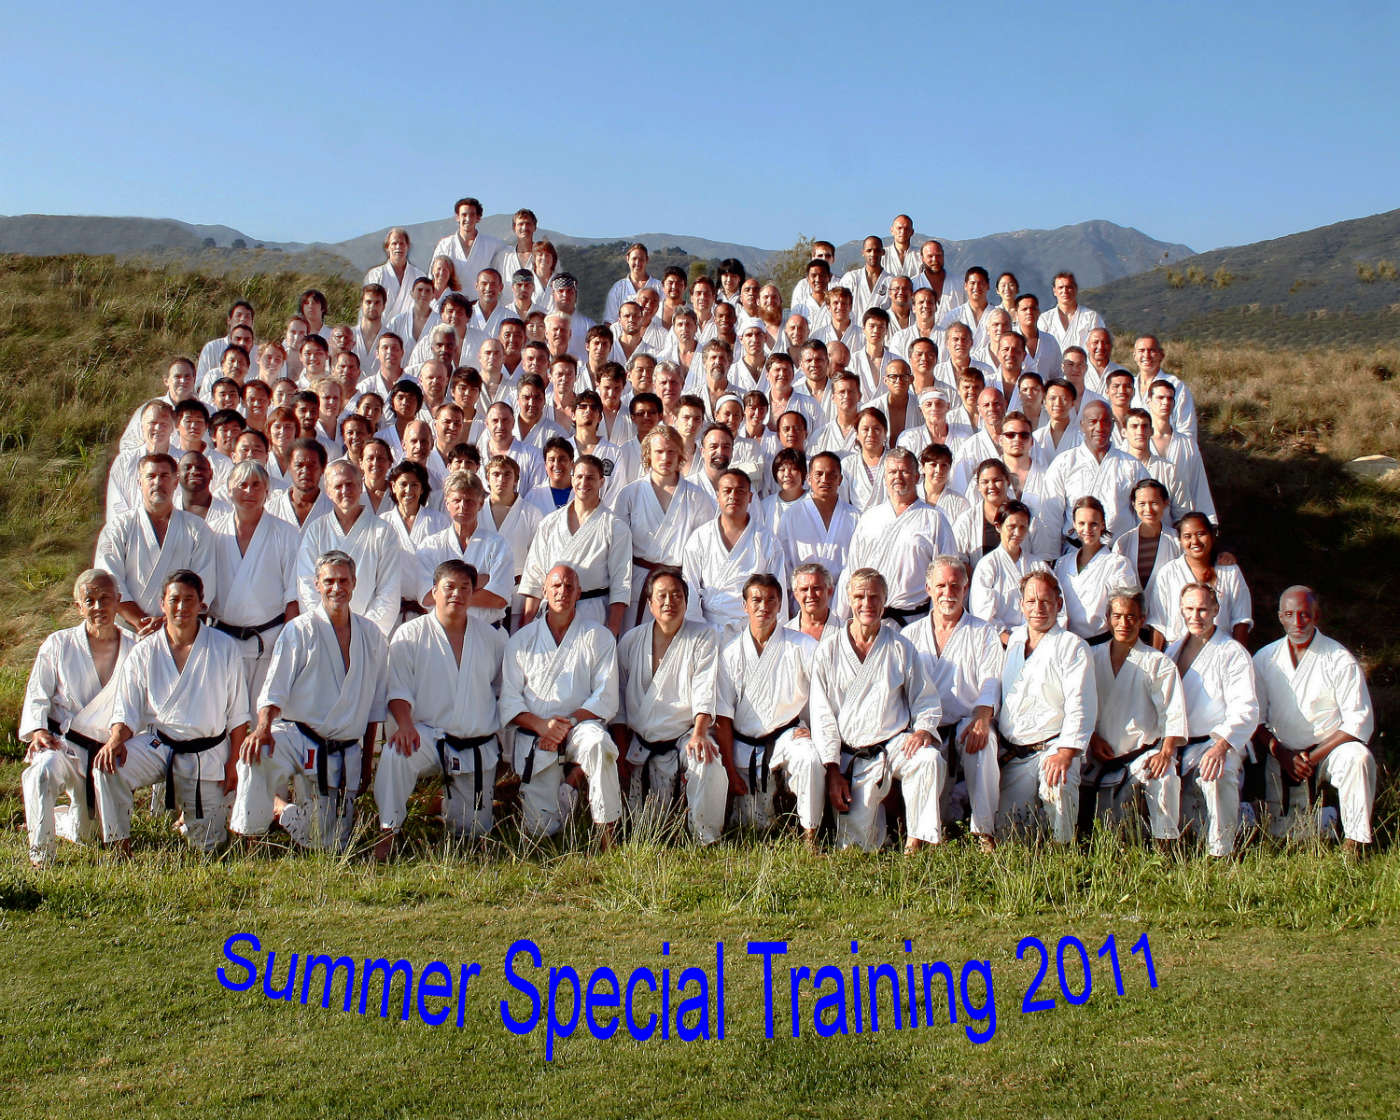 Summer-Special-Training-2011-web